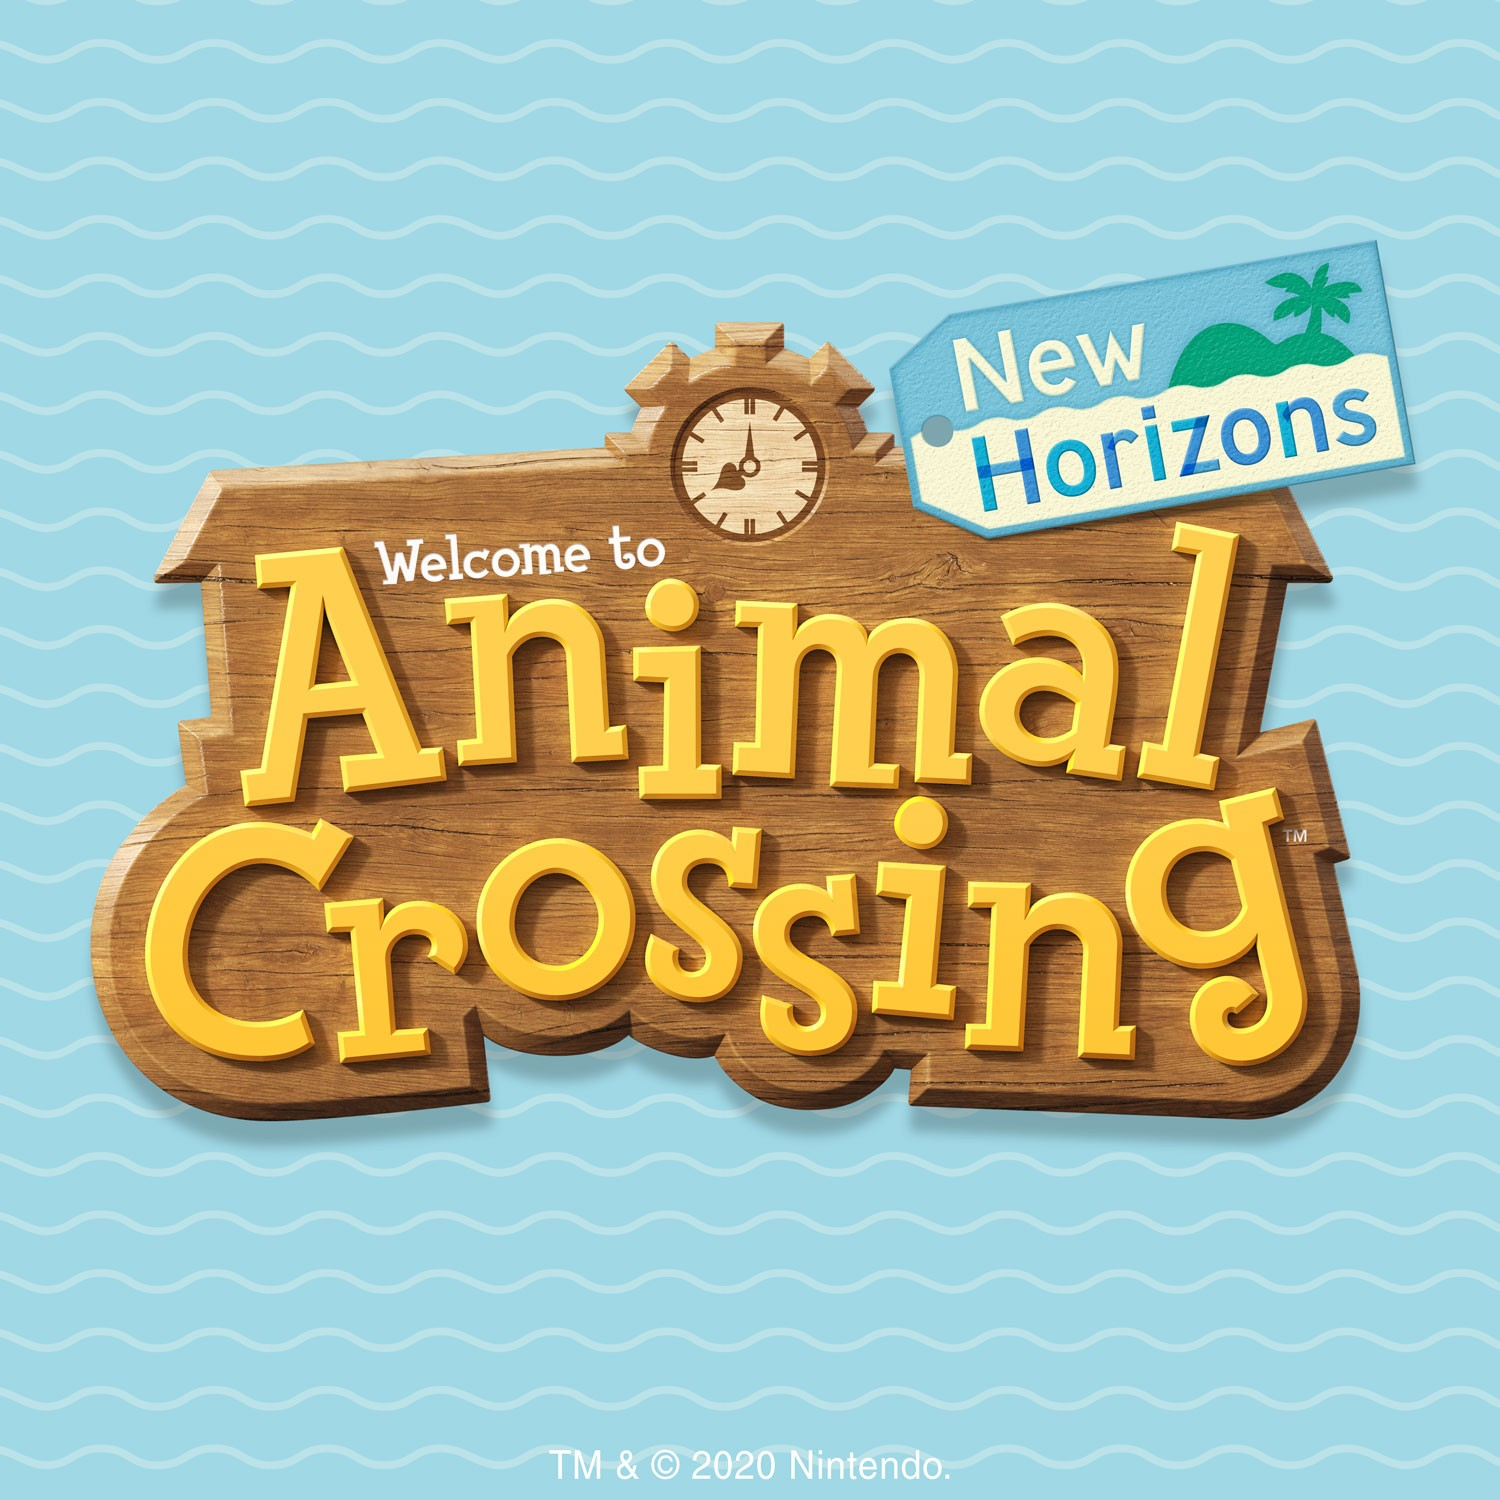 Animal Crossing 3D Art Sticker Pack Image 1